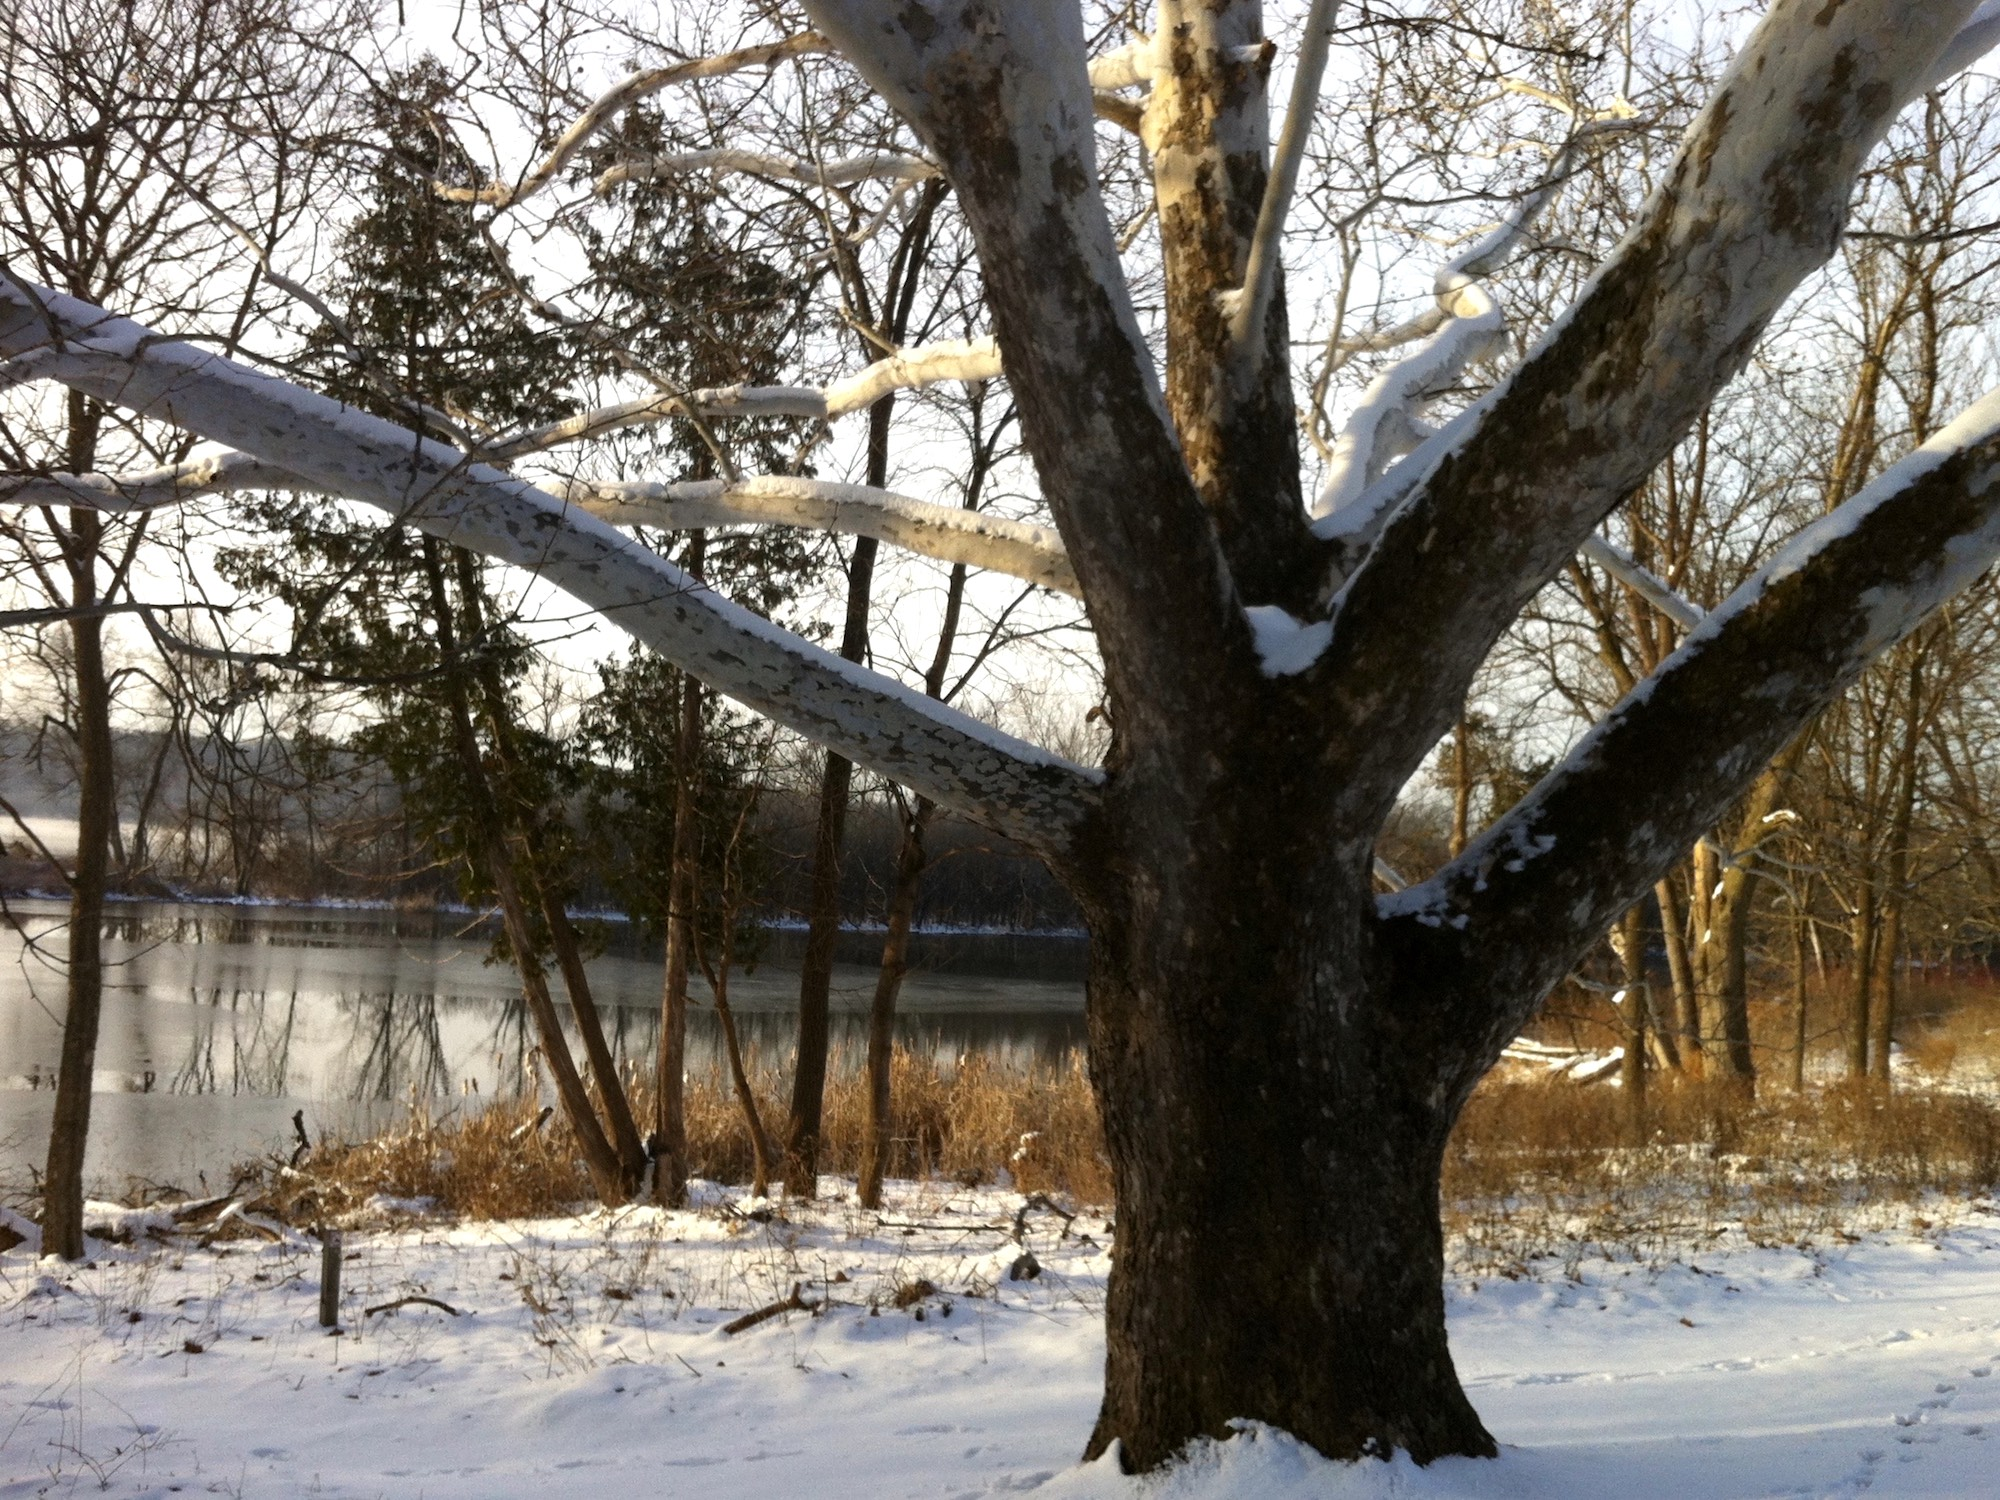 Sycamore tree between Ho-Nee-Um Pond and Arbor Drive on north shore of Lake Wingra on March 24, 2015.